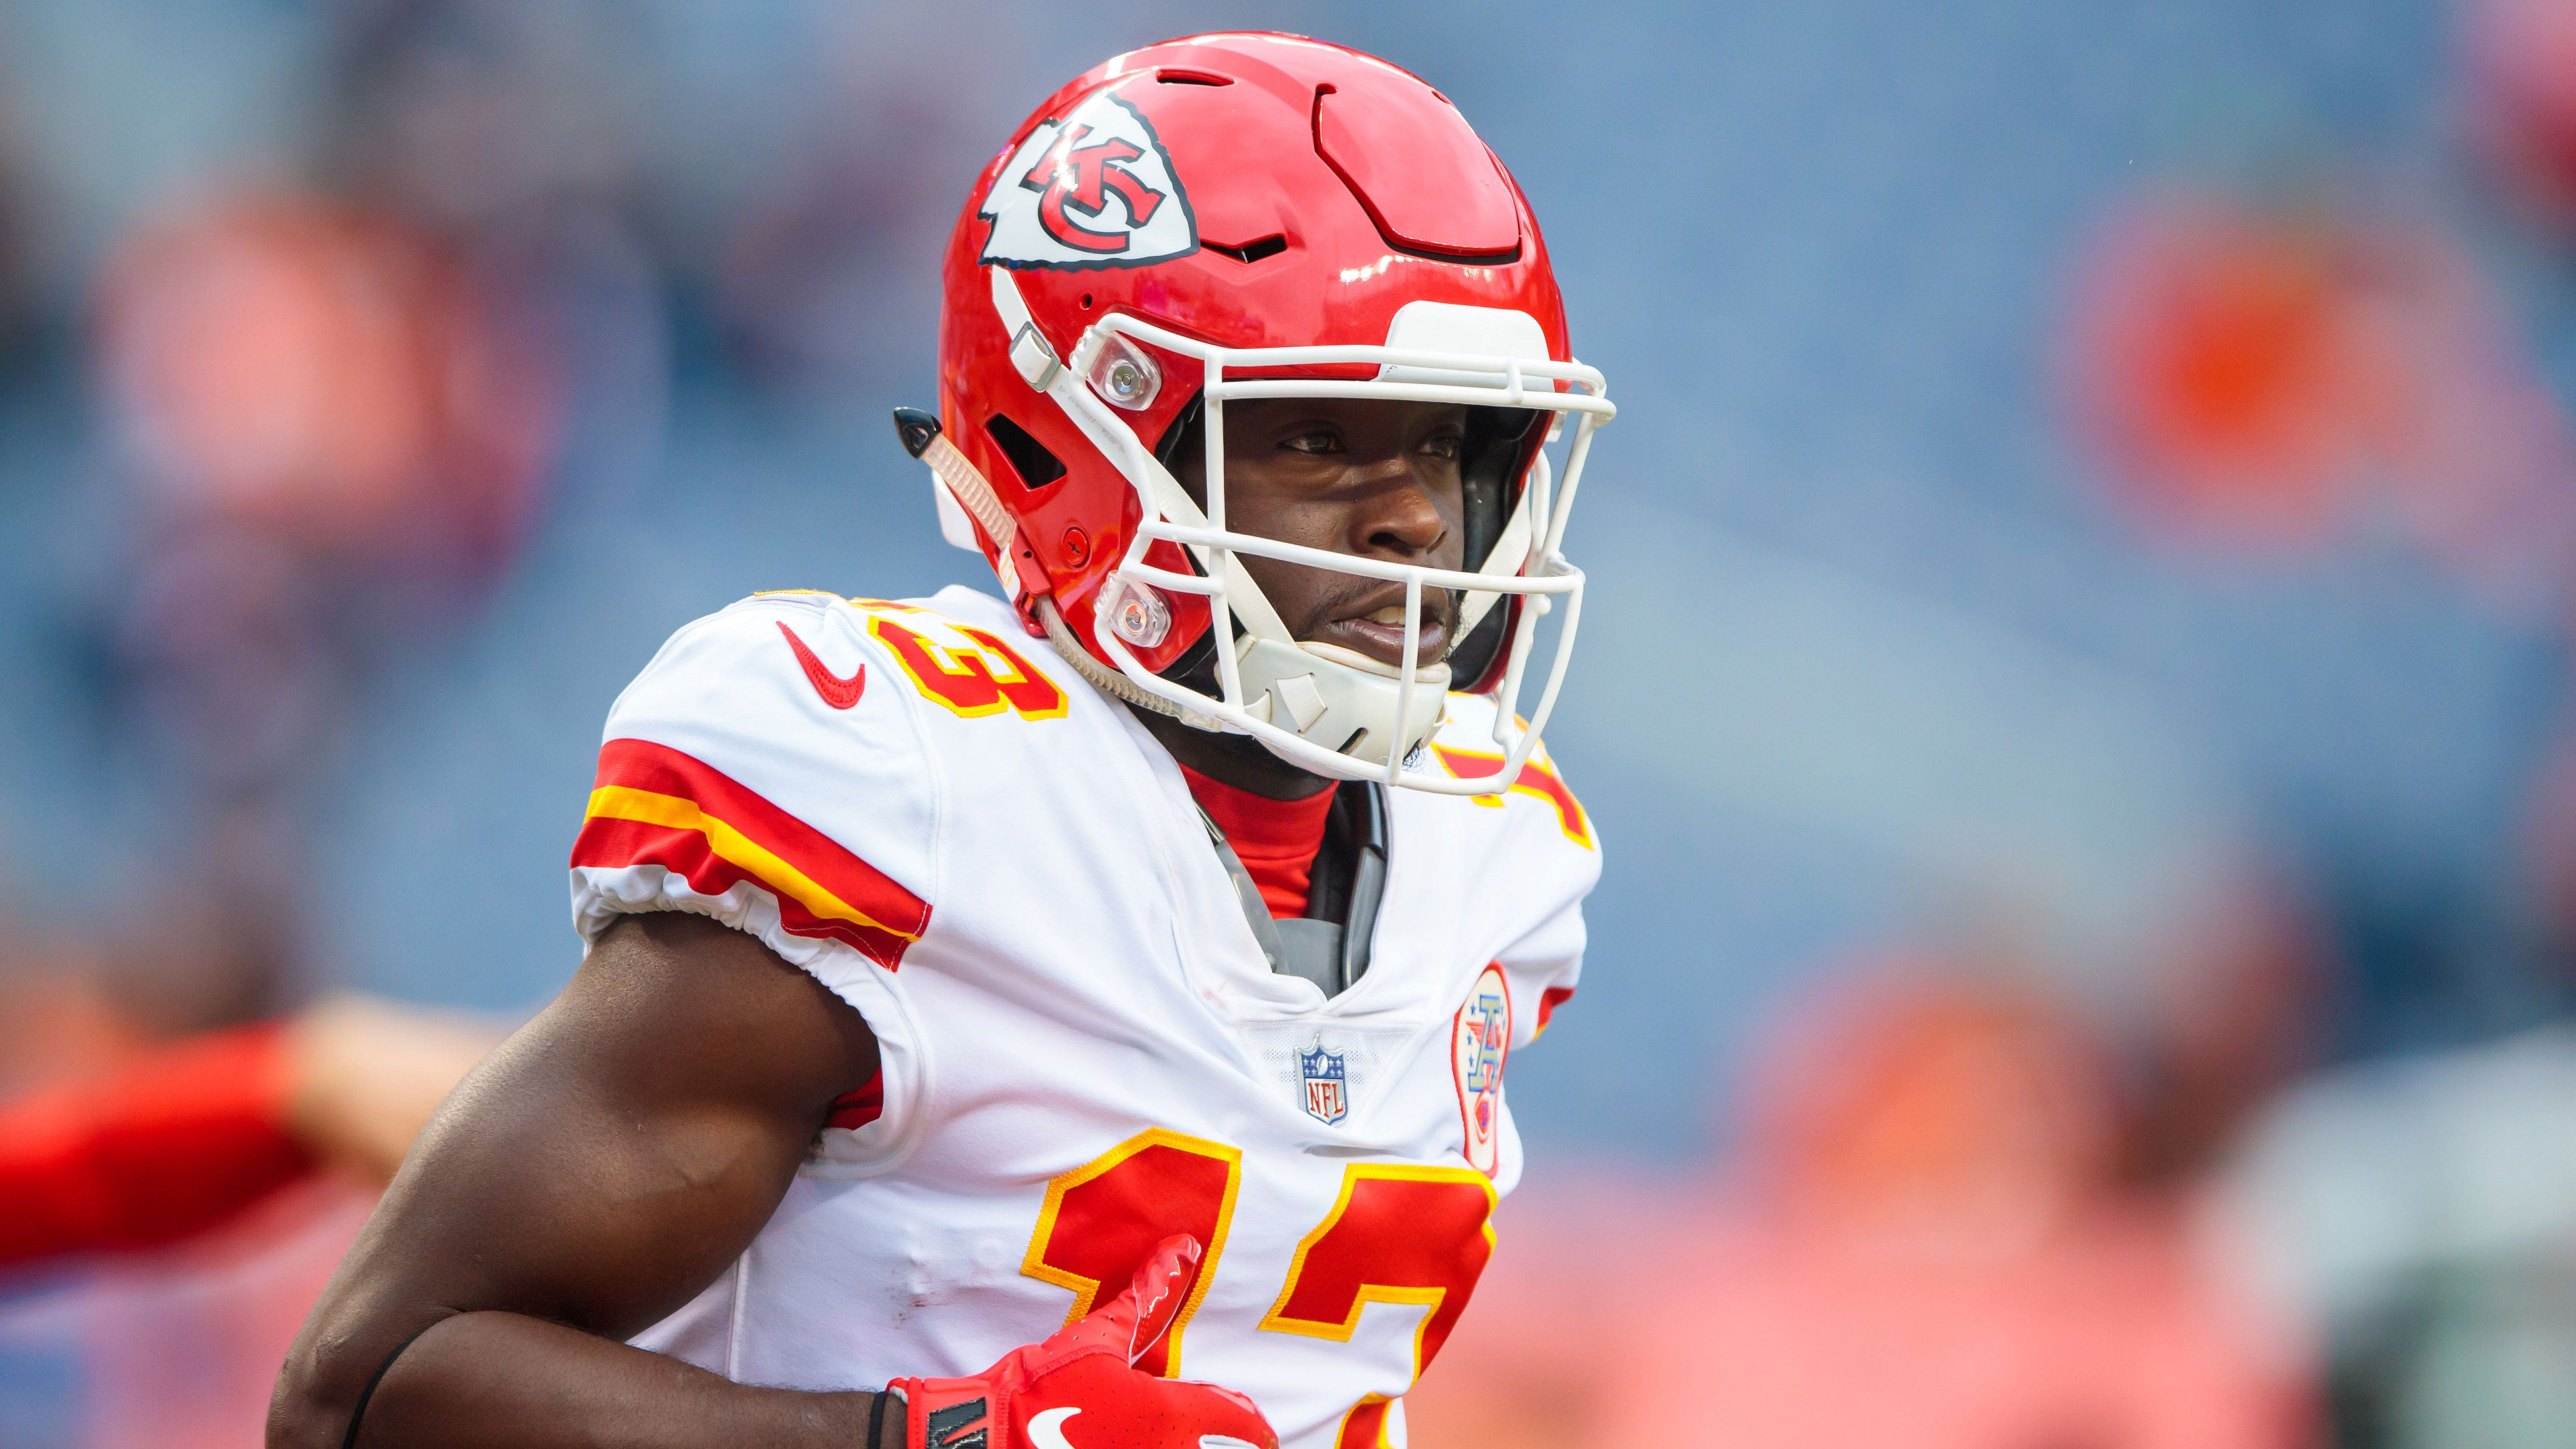 wholesale dealer 19d6a 55bec Chiefs return suspended WR Thomas to active roster, waive WR ...